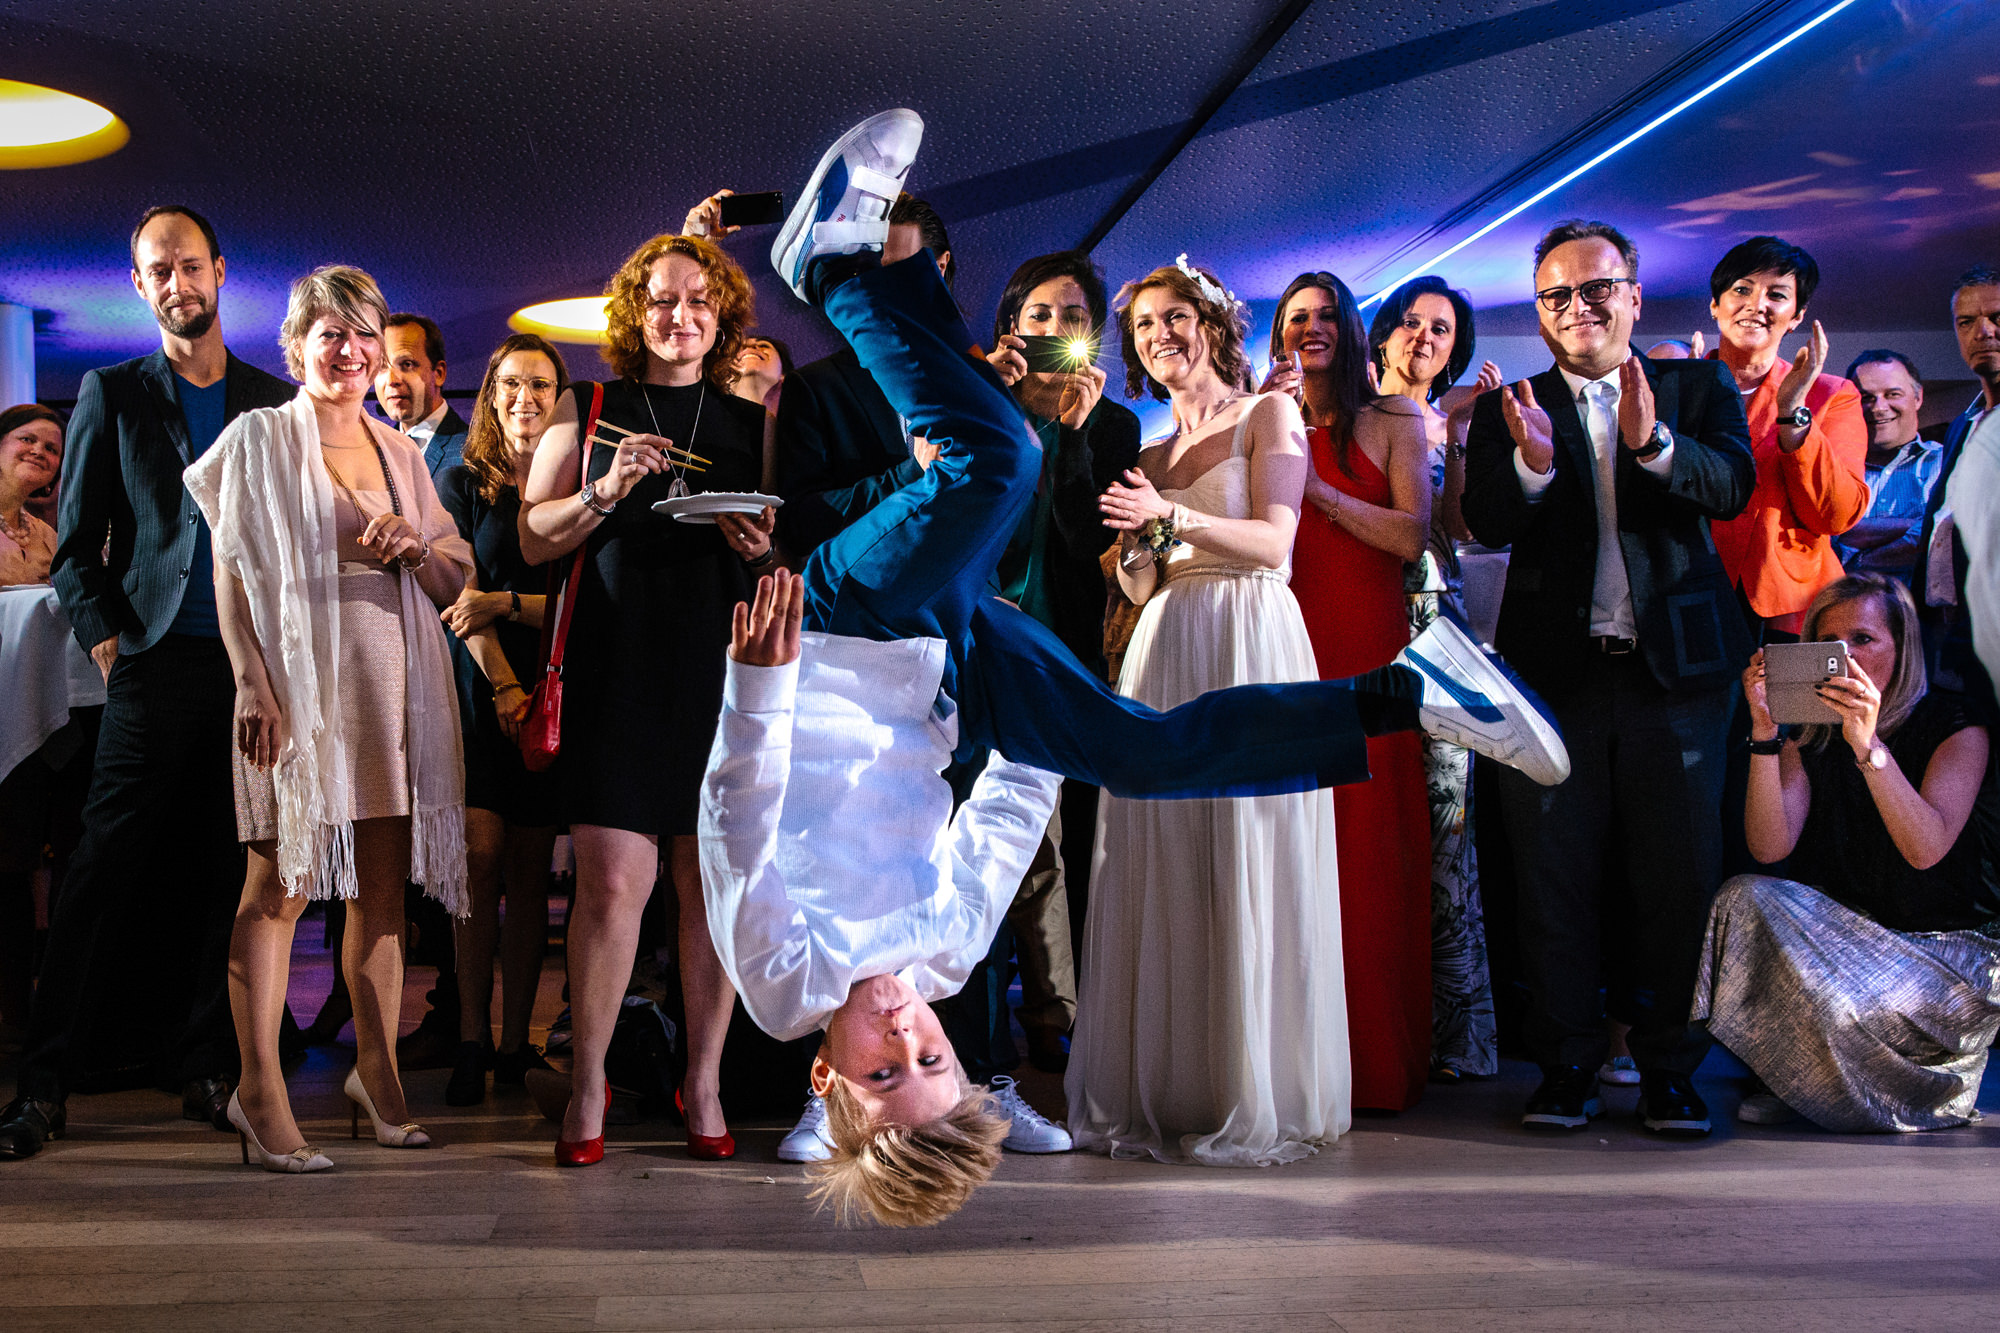 Boy breakdancing at reception photo by Yves Schepers